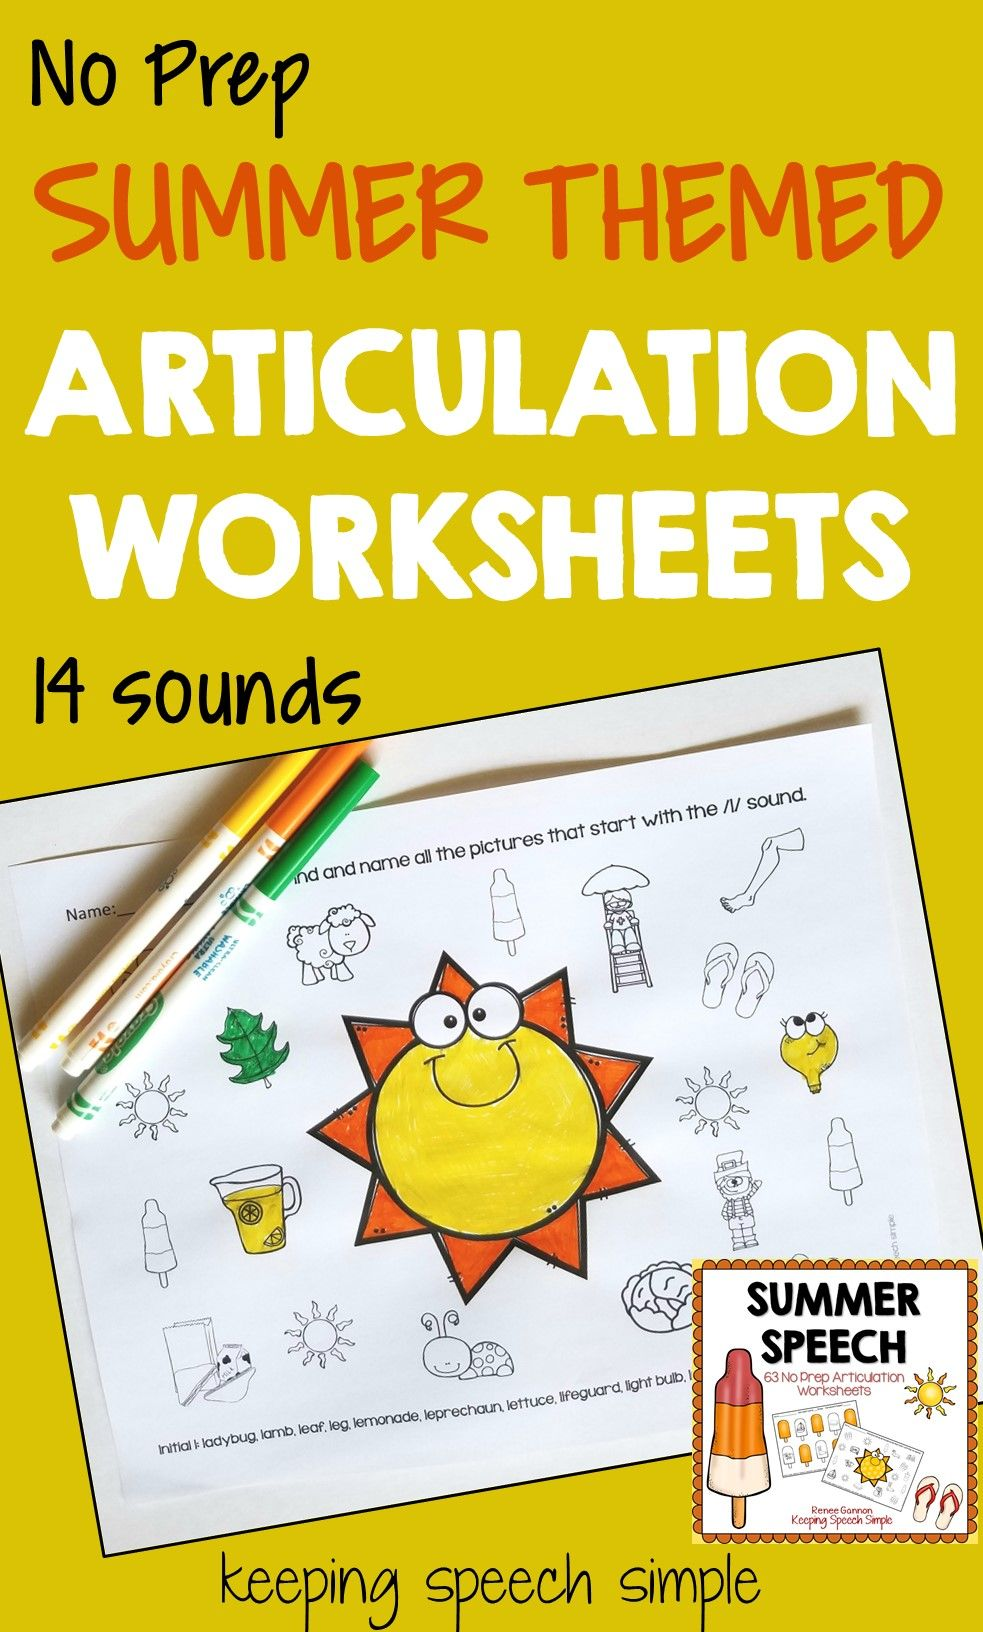 Summer Speech No Prep Articulation Worksheets | Worksheets and Therapy